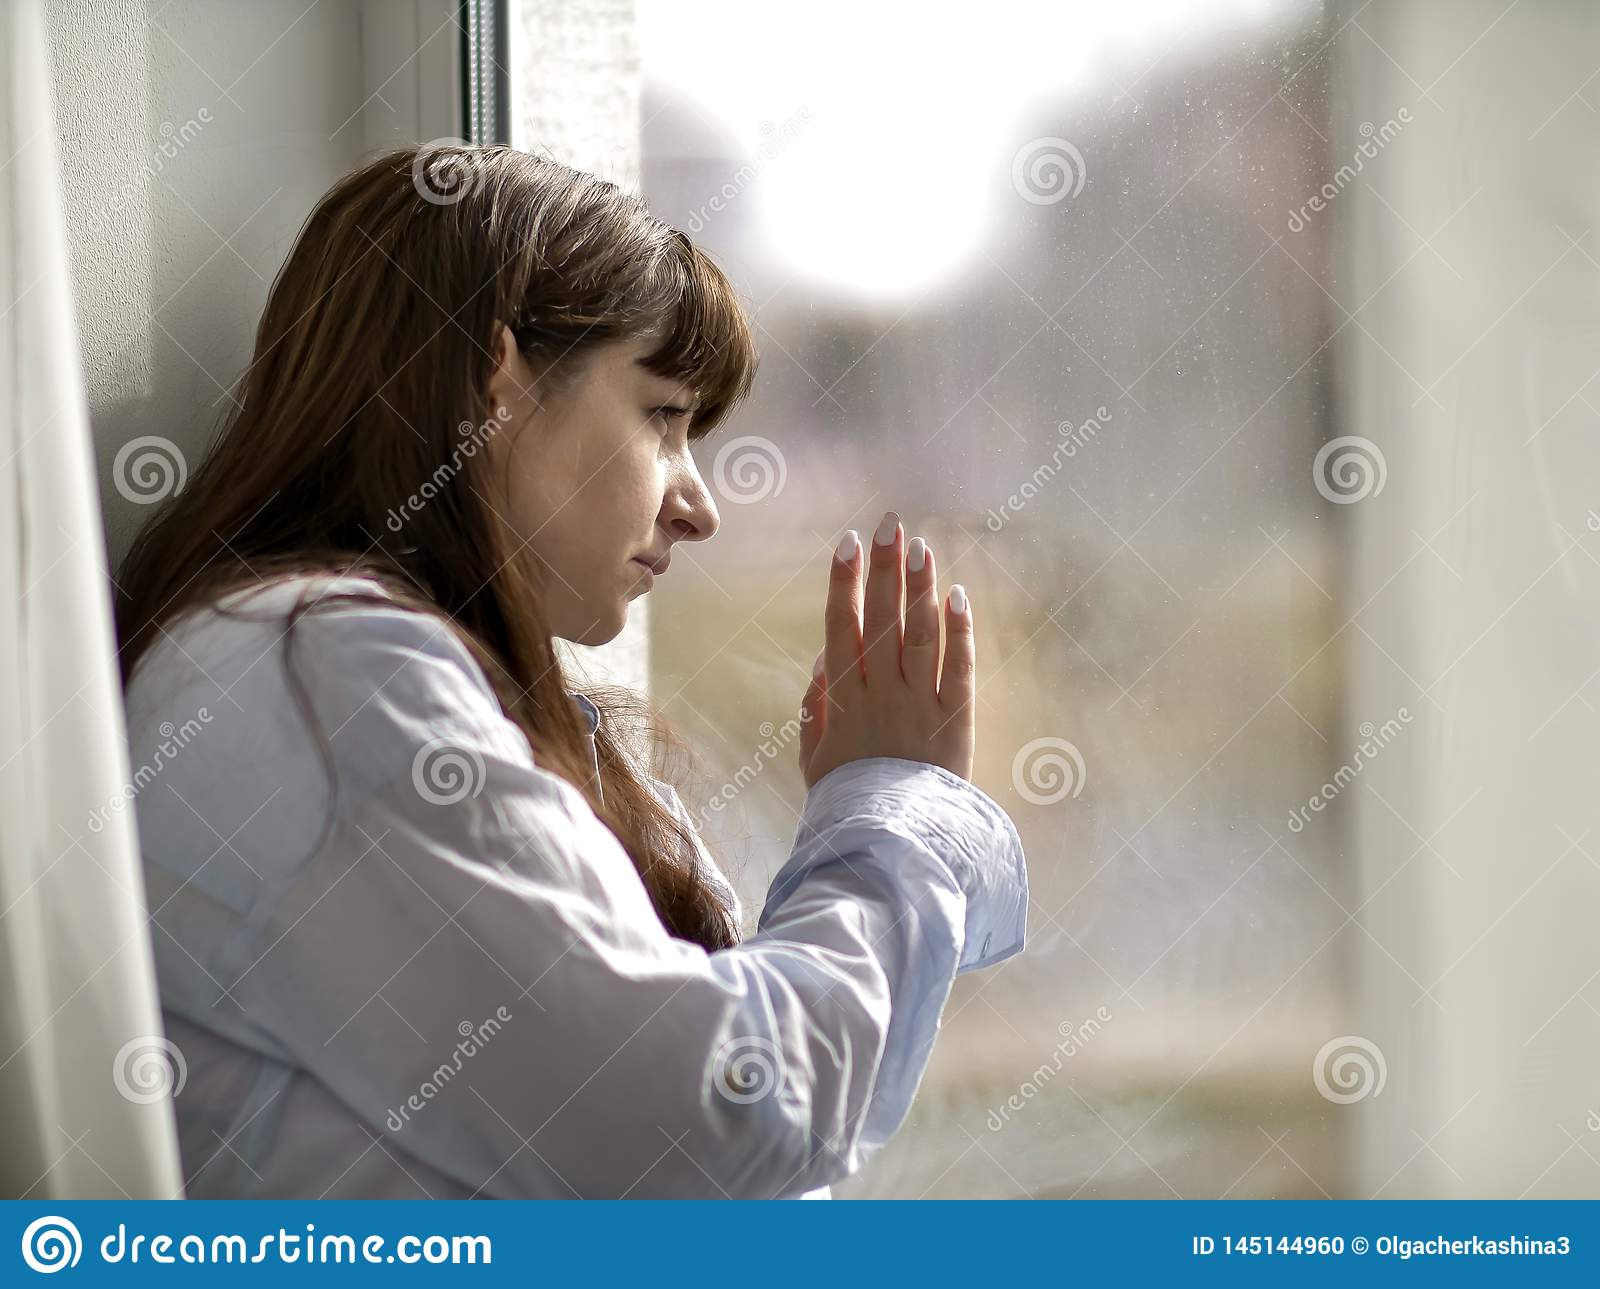 Sad young brunette woman looks out the window